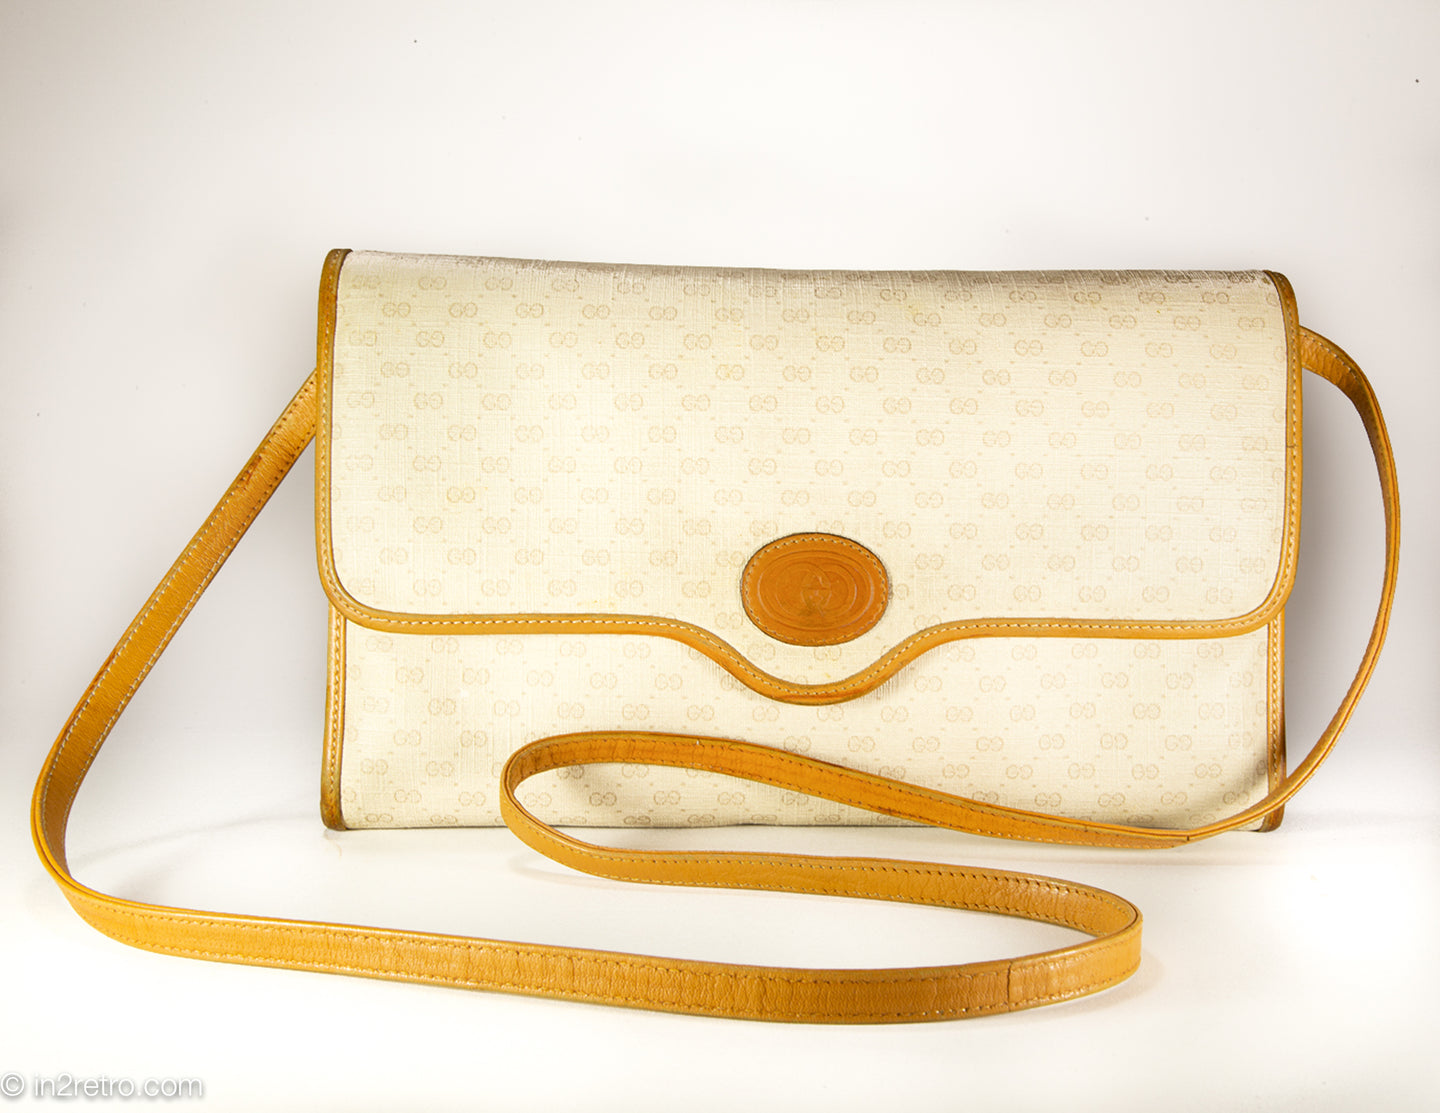 VINTAGE AUTHENTIC GUCCI CLASSIC MICRO GG CONVERT. CLUTCH/SHOULDER CROSSBODY/ENVELOPE BAG CREAM/TAN